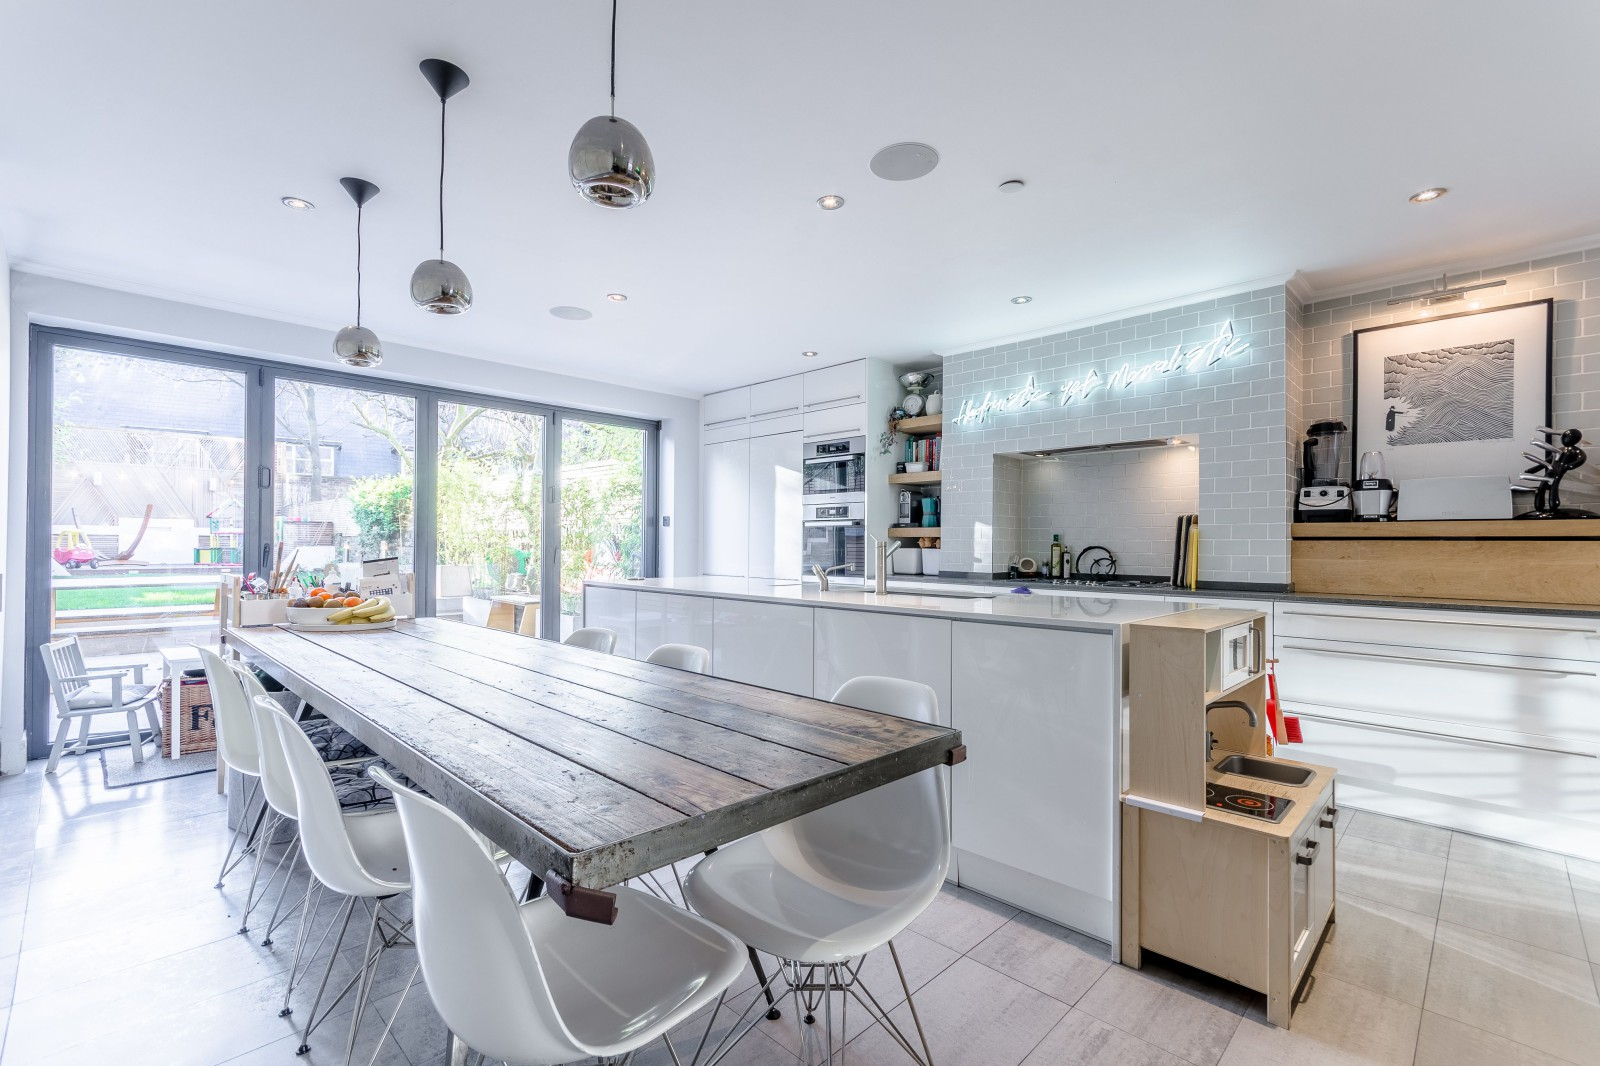 12 family homes give a lesson in interior design foxtons - Housing and interior design lesson plans ...